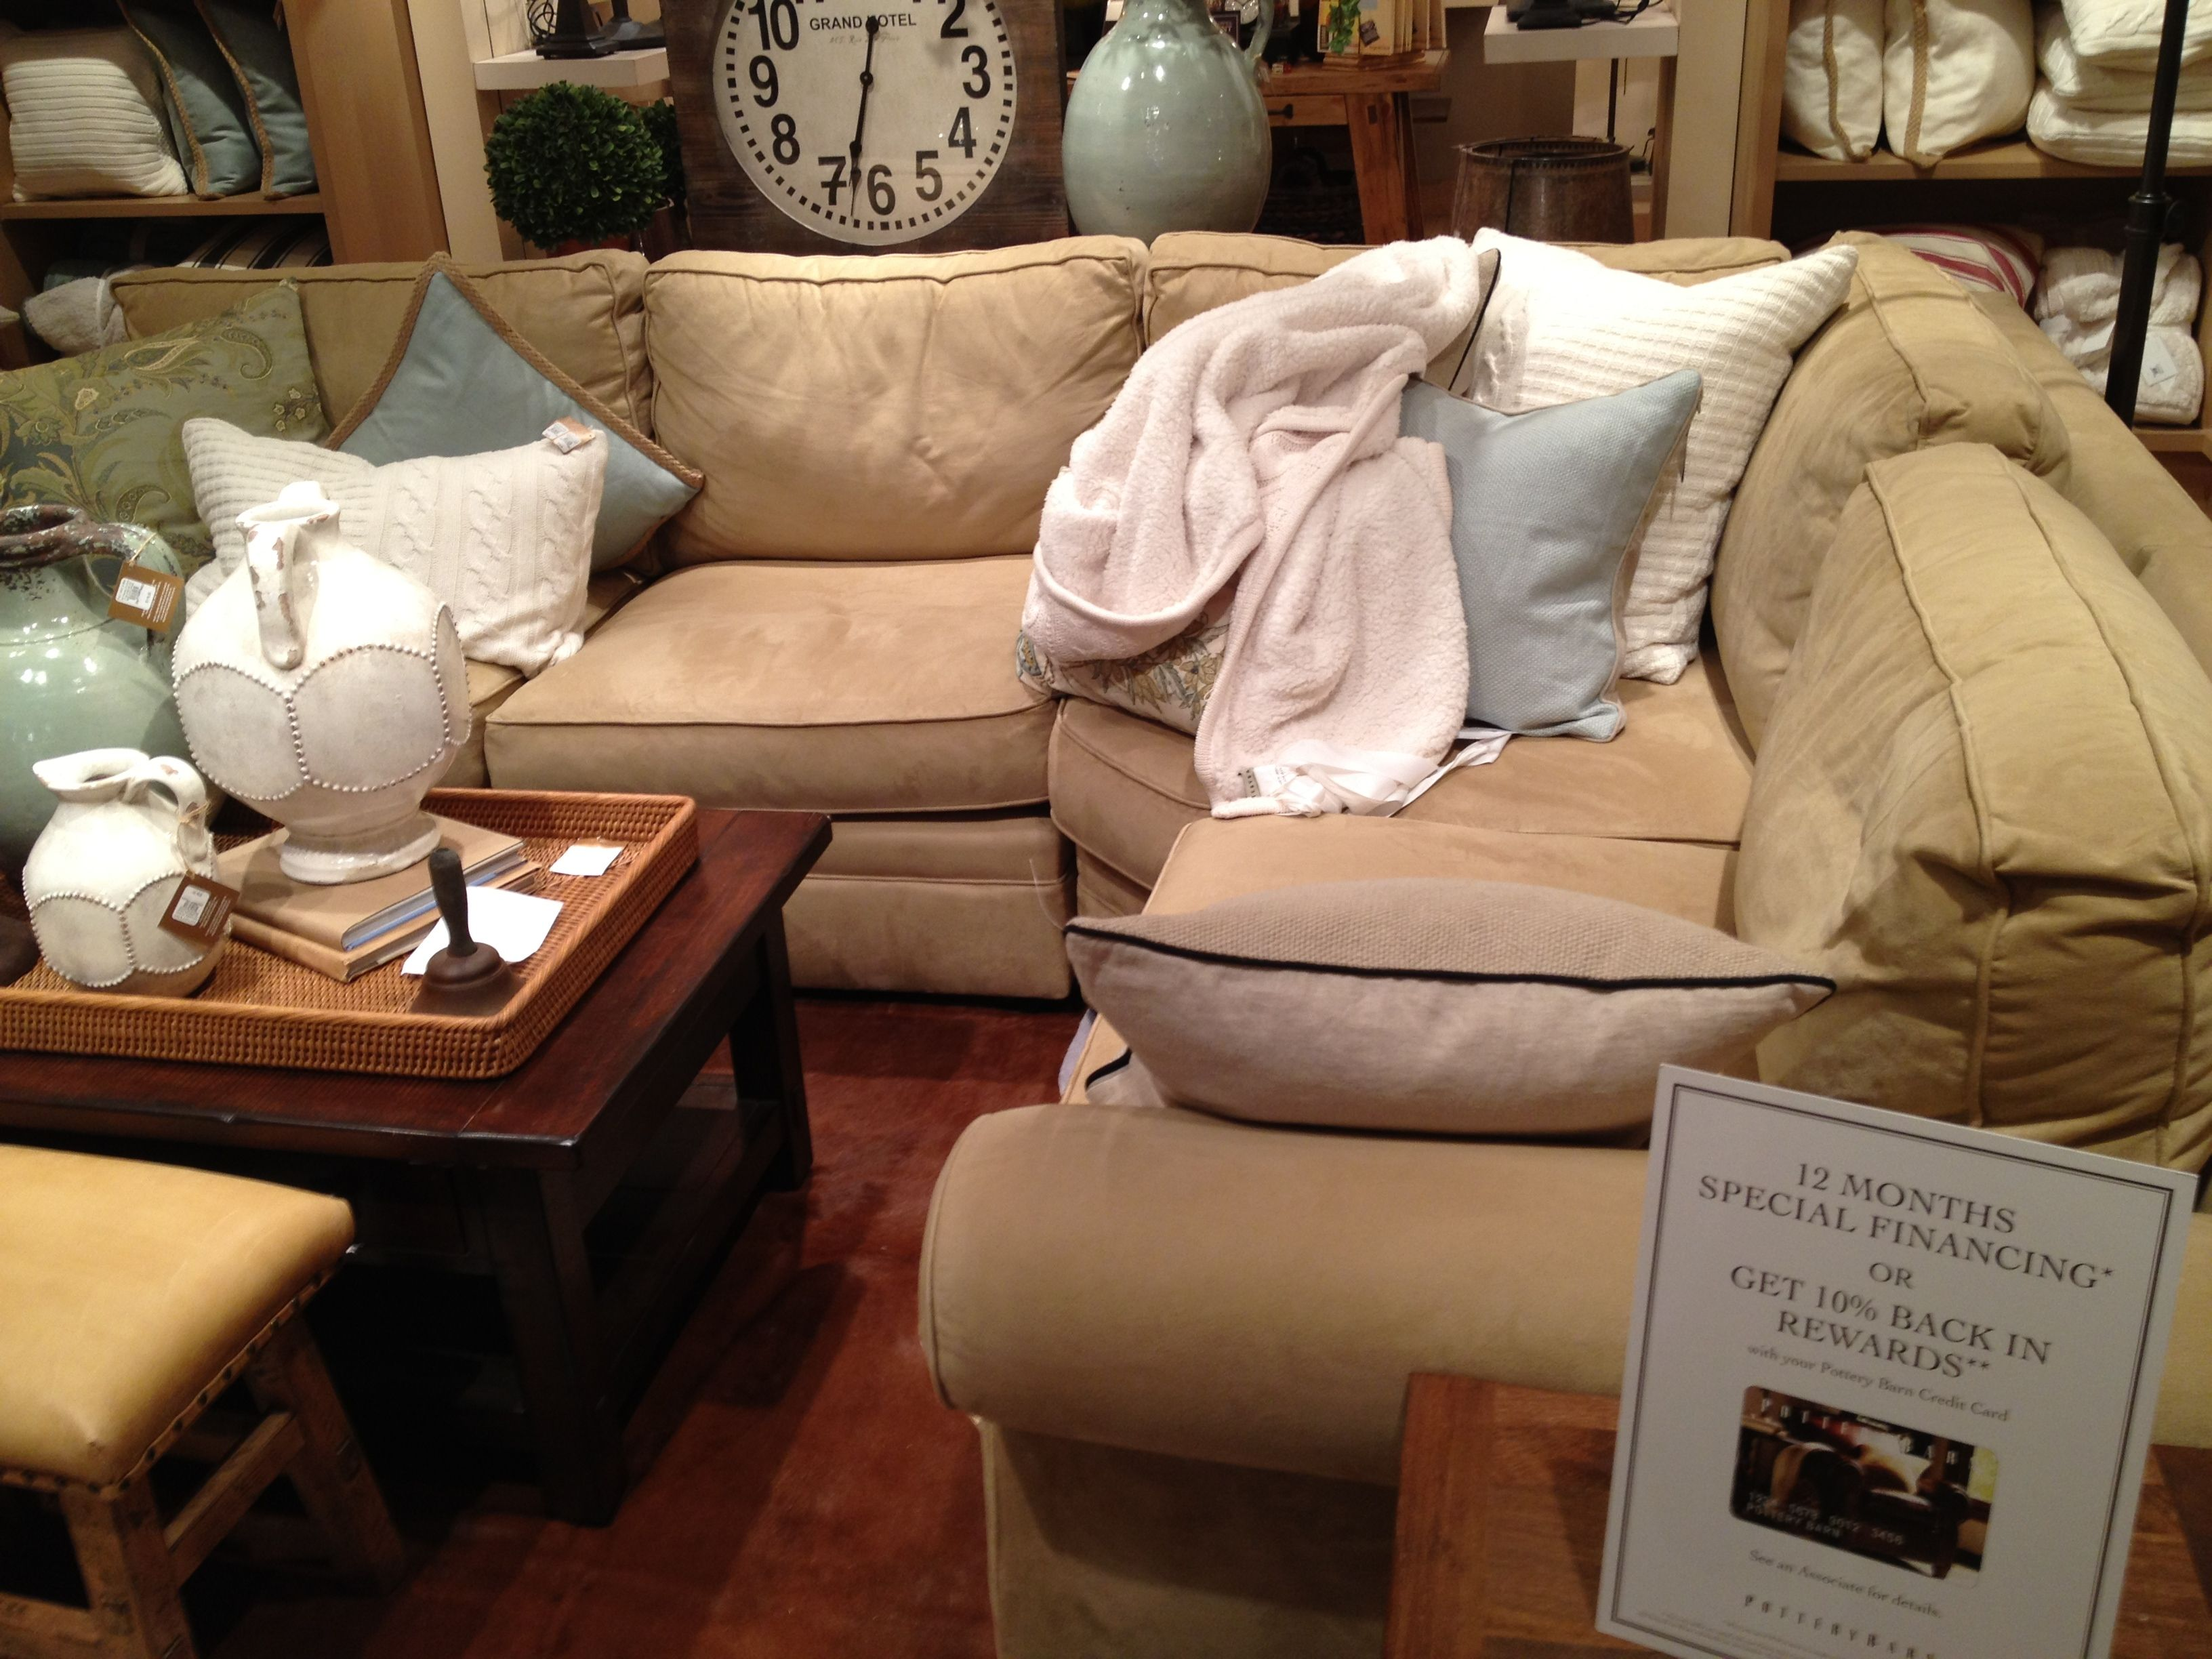 Brilliant Pin By Sofacouchs On Sofas Couches Pottery Barn Sofa Theyellowbook Wood Chair Design Ideas Theyellowbookinfo